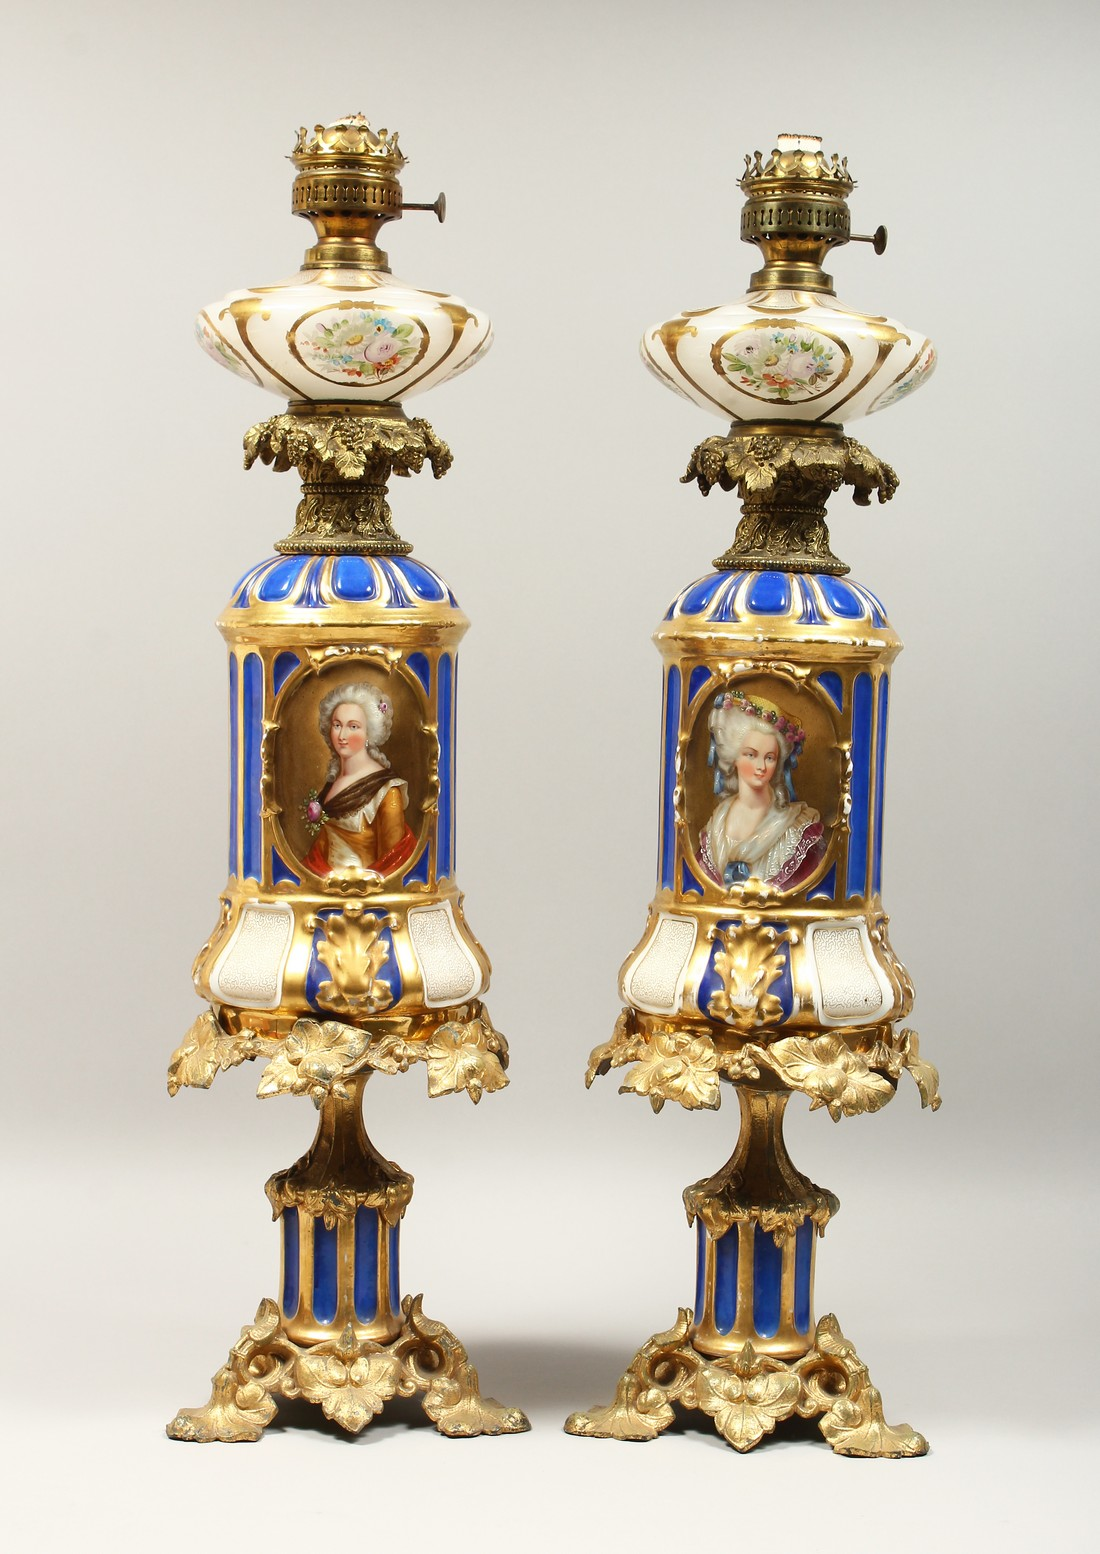 A SUPERB PAIR OF 19TH CENTURY FRENCH PORCELAIN AND GILT BRONZE LAMPS ON STANDS, painted with